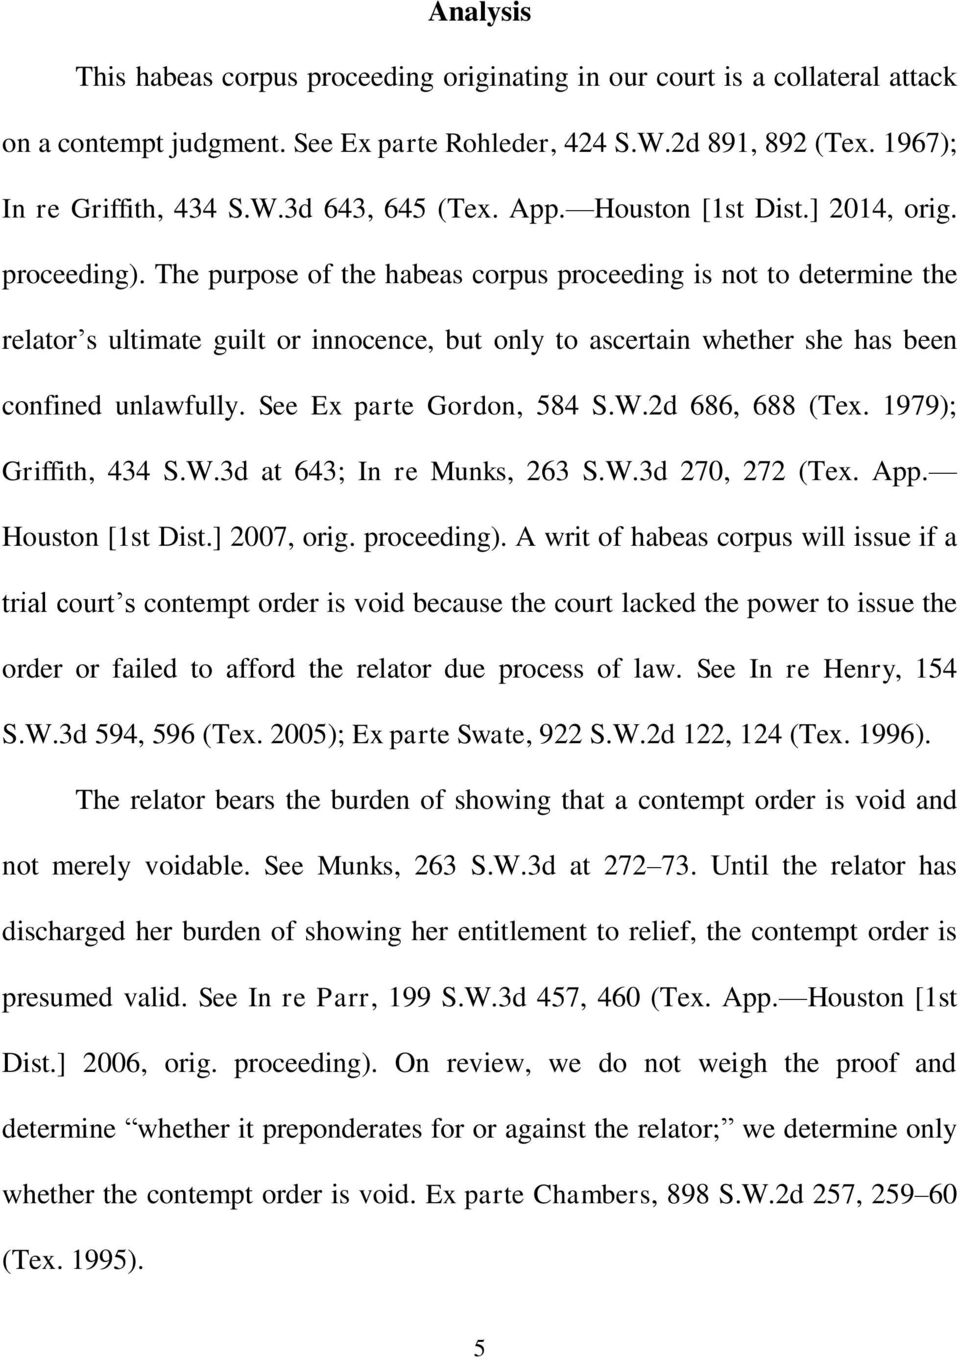 The purpose of the habeas corpus proceeding is not to determine the relator s ultimate guilt or innocence, but only to ascertain whether she has been confined unlawfully. See Ex parte Gordon, 584 S.W.